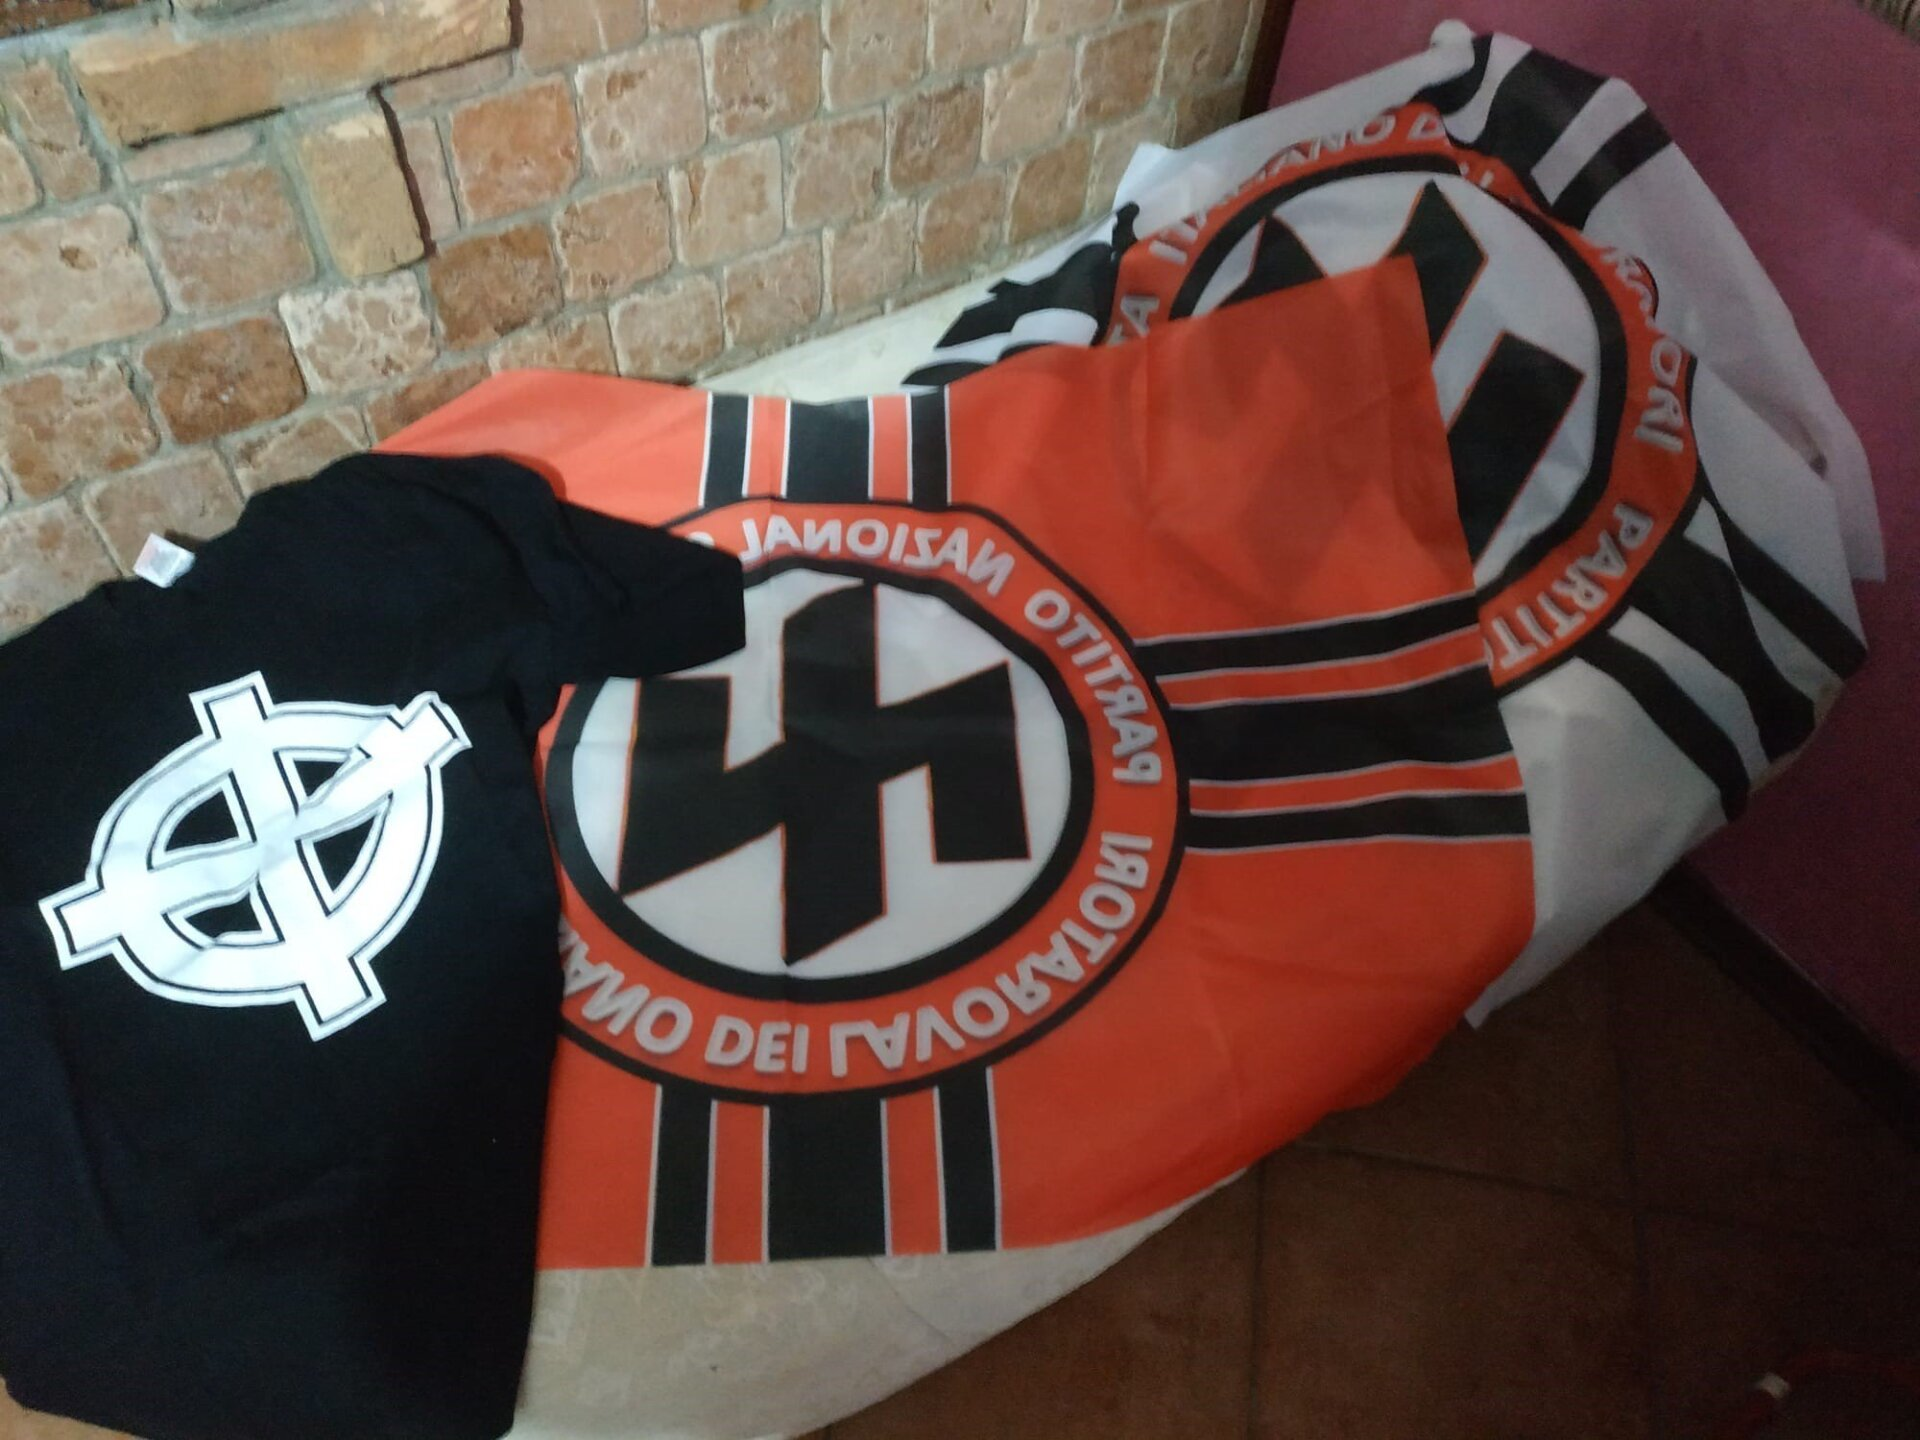 Photos: Police raids in Italy uncover weapons, propaganda and suspects who wanted to create an 'openly pro-Nazi'party